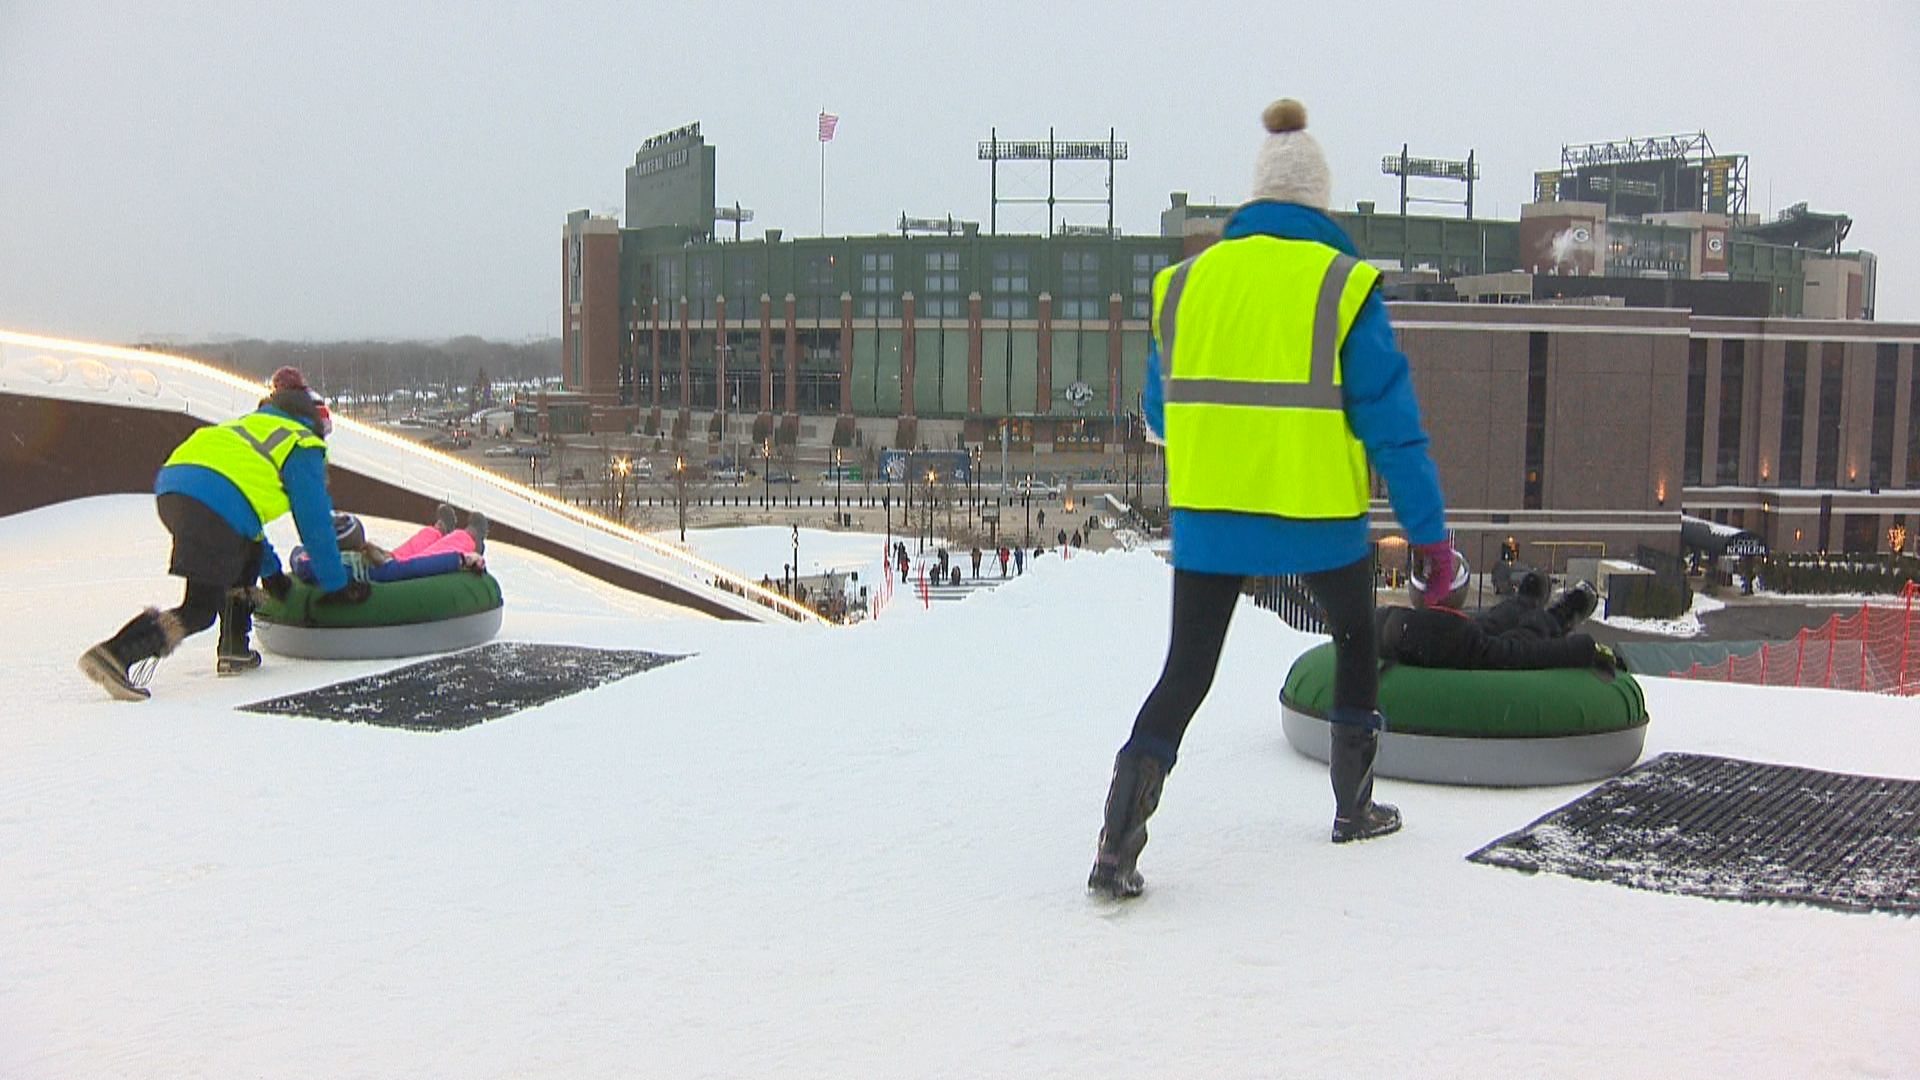 Ariens Hill holds grand-opening, December 21, 2017. (WLUK)